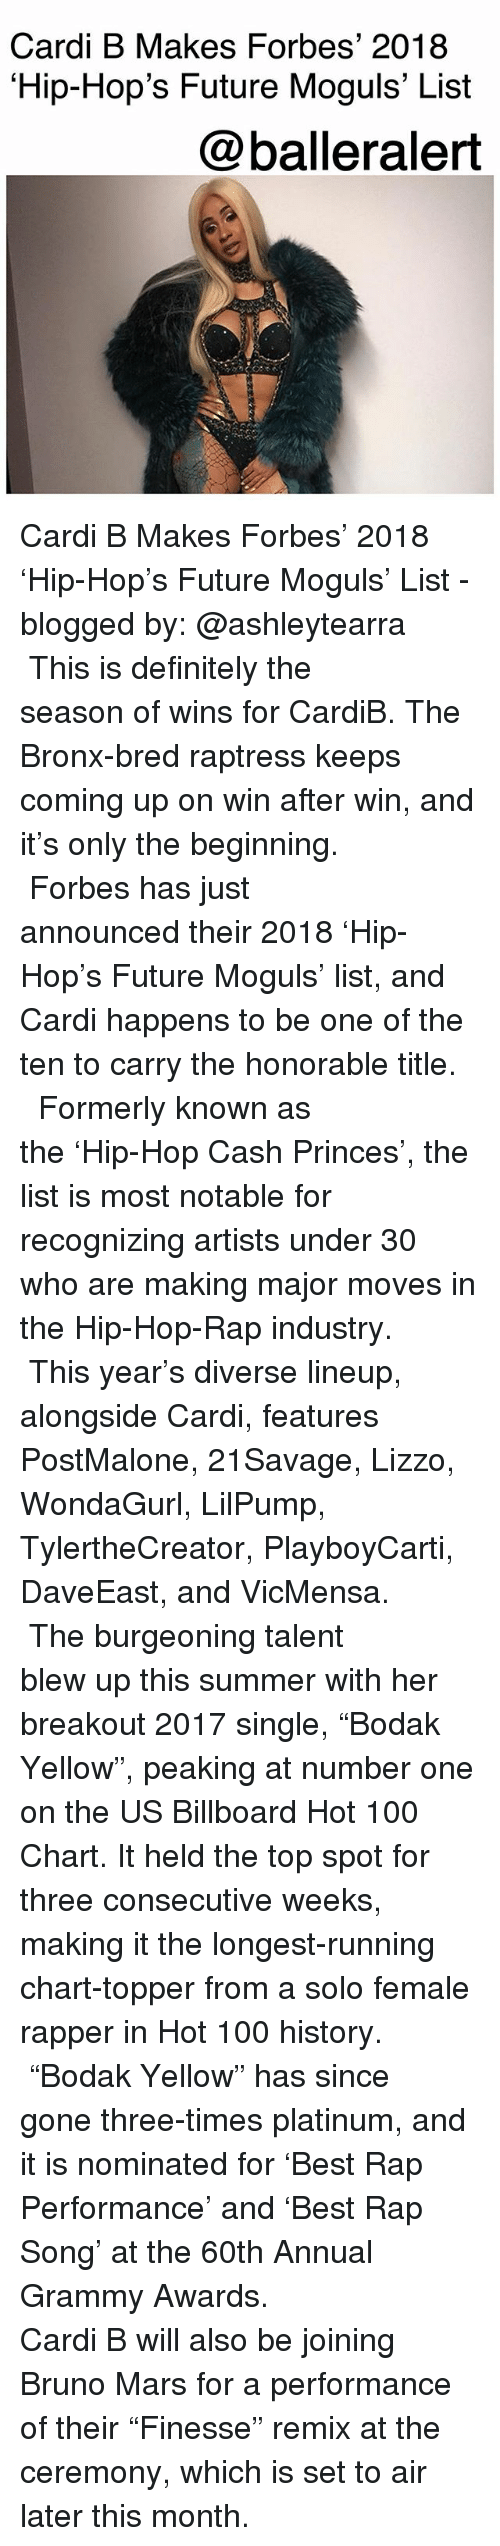 "Anaconda, Billboard, and Bruno Mars: Cardi B Makes Forbes' 2018  Hip-Hop's Future Moguls' List  @balleralert Cardi B Makes Forbes' 2018 'Hip-Hop's Future Moguls' List - blogged by: @ashleytearra ⠀⠀⠀⠀⠀⠀⠀ ⠀⠀⠀⠀⠀⠀⠀ This is definitely the season of wins for CardiB. The Bronx-bred raptress keeps coming up on win after win, and it's only the beginning. ⠀⠀⠀⠀⠀⠀⠀ ⠀⠀⠀⠀⠀⠀⠀ Forbes has just announced their 2018 'Hip-Hop's Future Moguls' list, and Cardi happens to be one of the ten to carry the honorable title. ⠀⠀⠀⠀⠀⠀⠀ ⠀⠀⠀⠀⠀⠀⠀ Formerly known as the 'Hip-Hop Cash Princes', the list is most notable for recognizing artists under 30 who are making major moves in the Hip-Hop-Rap industry. ⠀⠀⠀⠀⠀⠀⠀ ⠀⠀⠀⠀⠀⠀⠀ This year's diverse lineup, alongside Cardi, features PostMalone, 21Savage, Lizzo, WondaGurl, LilPump, TylertheCreator, PlayboyCarti, DaveEast, and VicMensa. ⠀⠀⠀⠀⠀⠀⠀ ⠀⠀⠀⠀⠀⠀⠀ The burgeoning talent blew up this summer with her breakout 2017 single, ""Bodak Yellow"", peaking at number one on the US Billboard Hot 100 Chart. It held the top spot for three consecutive weeks, making it the longest-running chart-topper from a solo female rapper in Hot 100 history. ⠀⠀⠀⠀⠀⠀⠀ ⠀⠀⠀⠀⠀⠀⠀ ""Bodak Yellow"" has since gone three-times platinum, and it is nominated for 'Best Rap Performance' and 'Best Rap Song' at the 60th Annual Grammy Awards. ⠀⠀⠀⠀⠀⠀⠀ ⠀⠀⠀⠀⠀⠀⠀ Cardi B will also be joining Bruno Mars for a performance of their ""Finesse"" remix at the ceremony, which is set to air later this month."